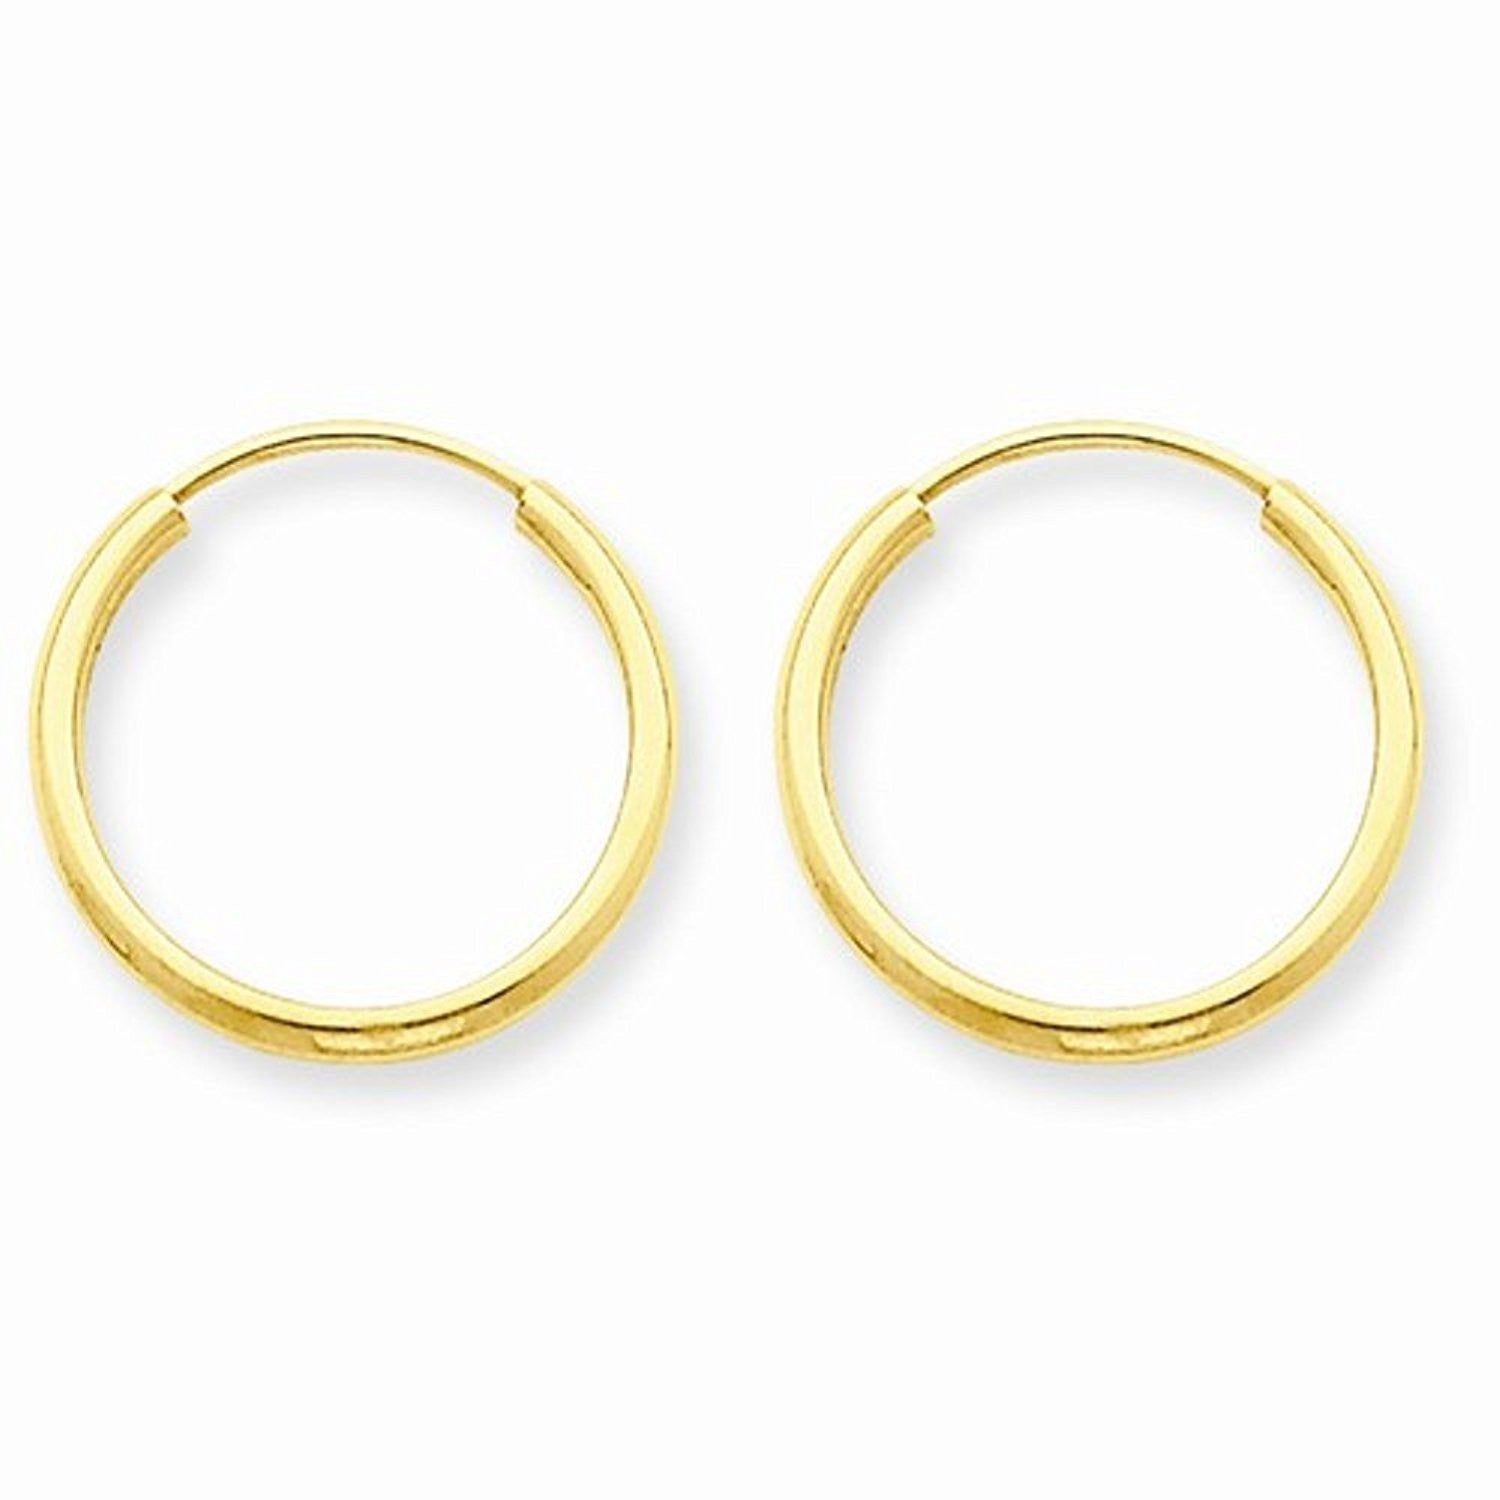 14K Yellow Gold 14mm x 1.5mm Endless Round Hoop Earrings